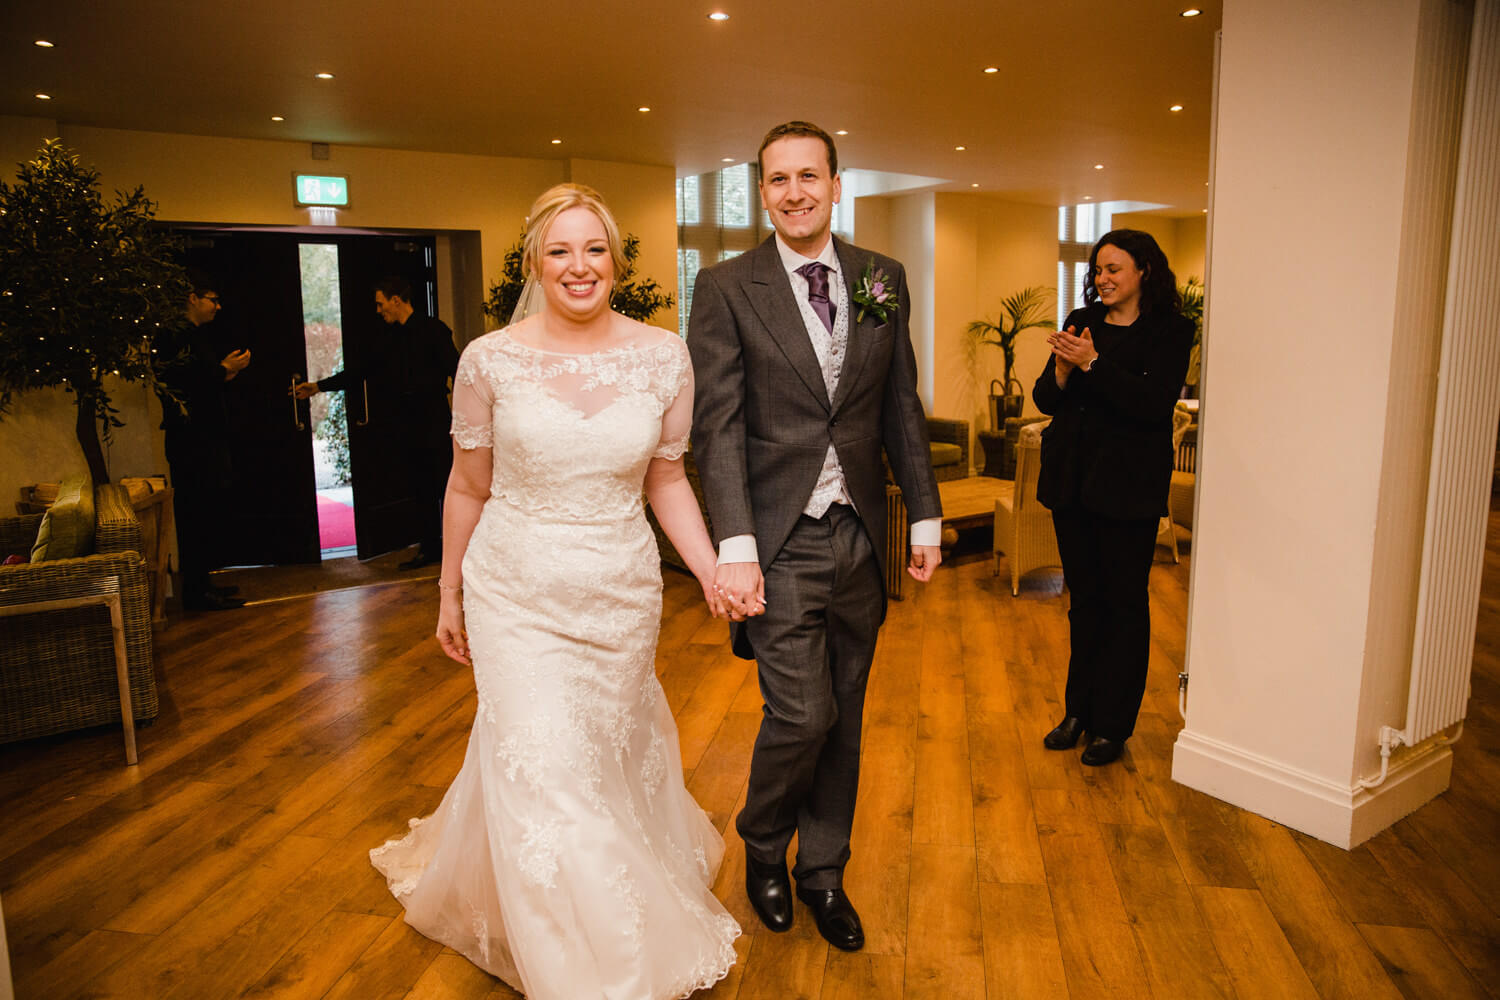 newly wedded couple enter reception venue for first dance